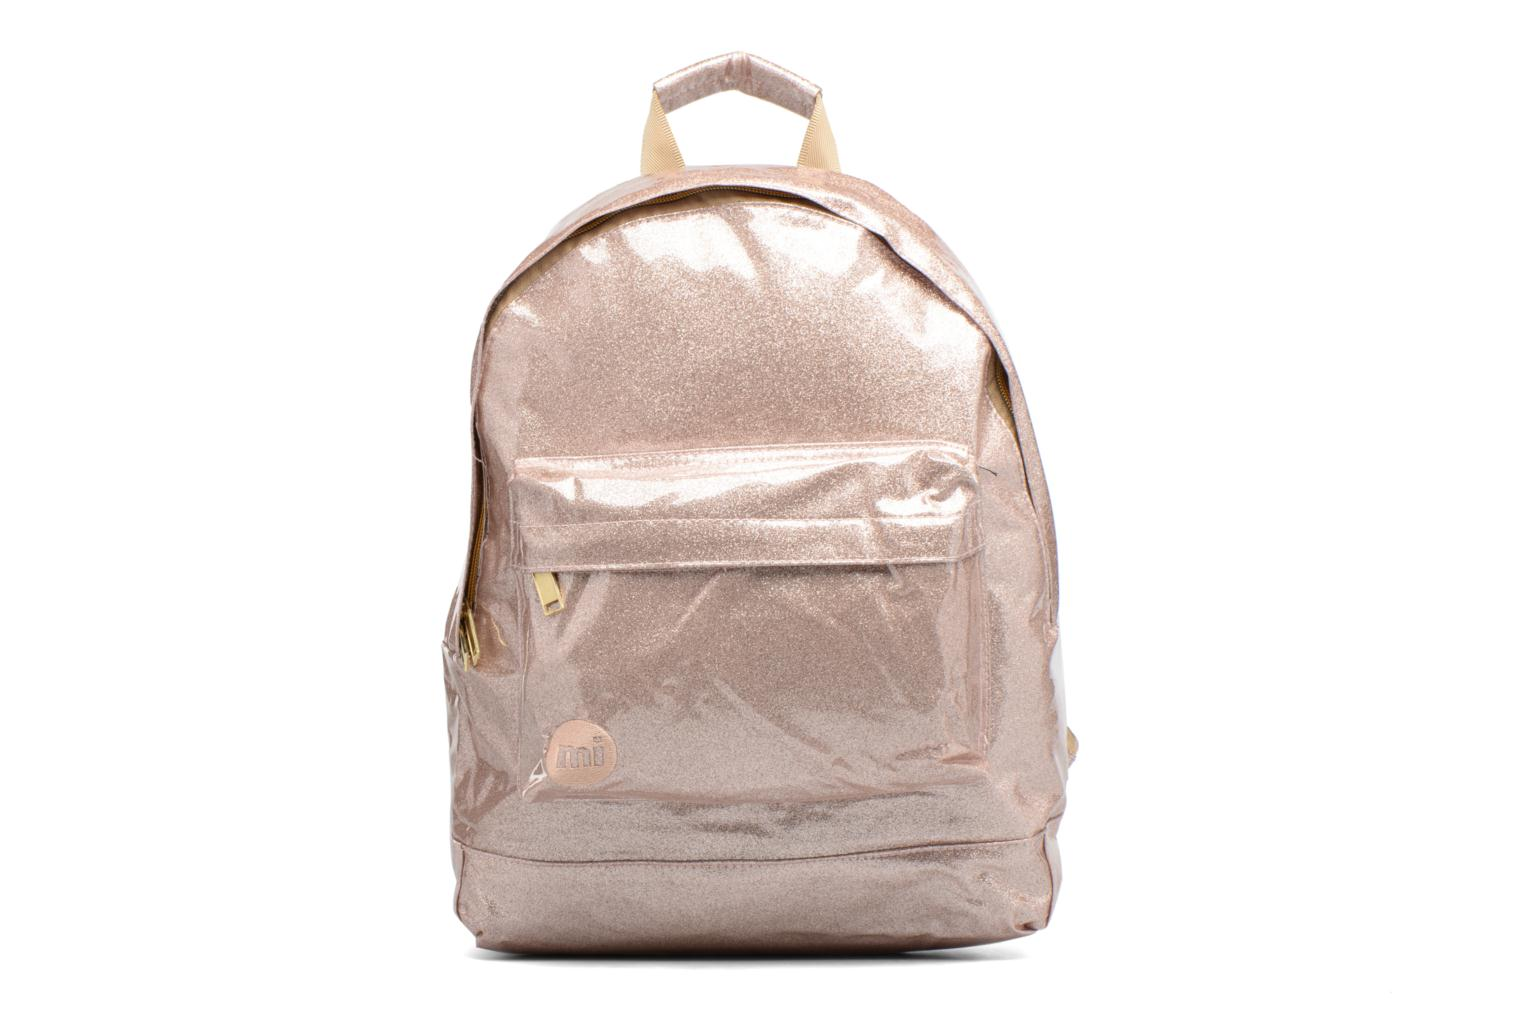 Gold Backpack Glitter